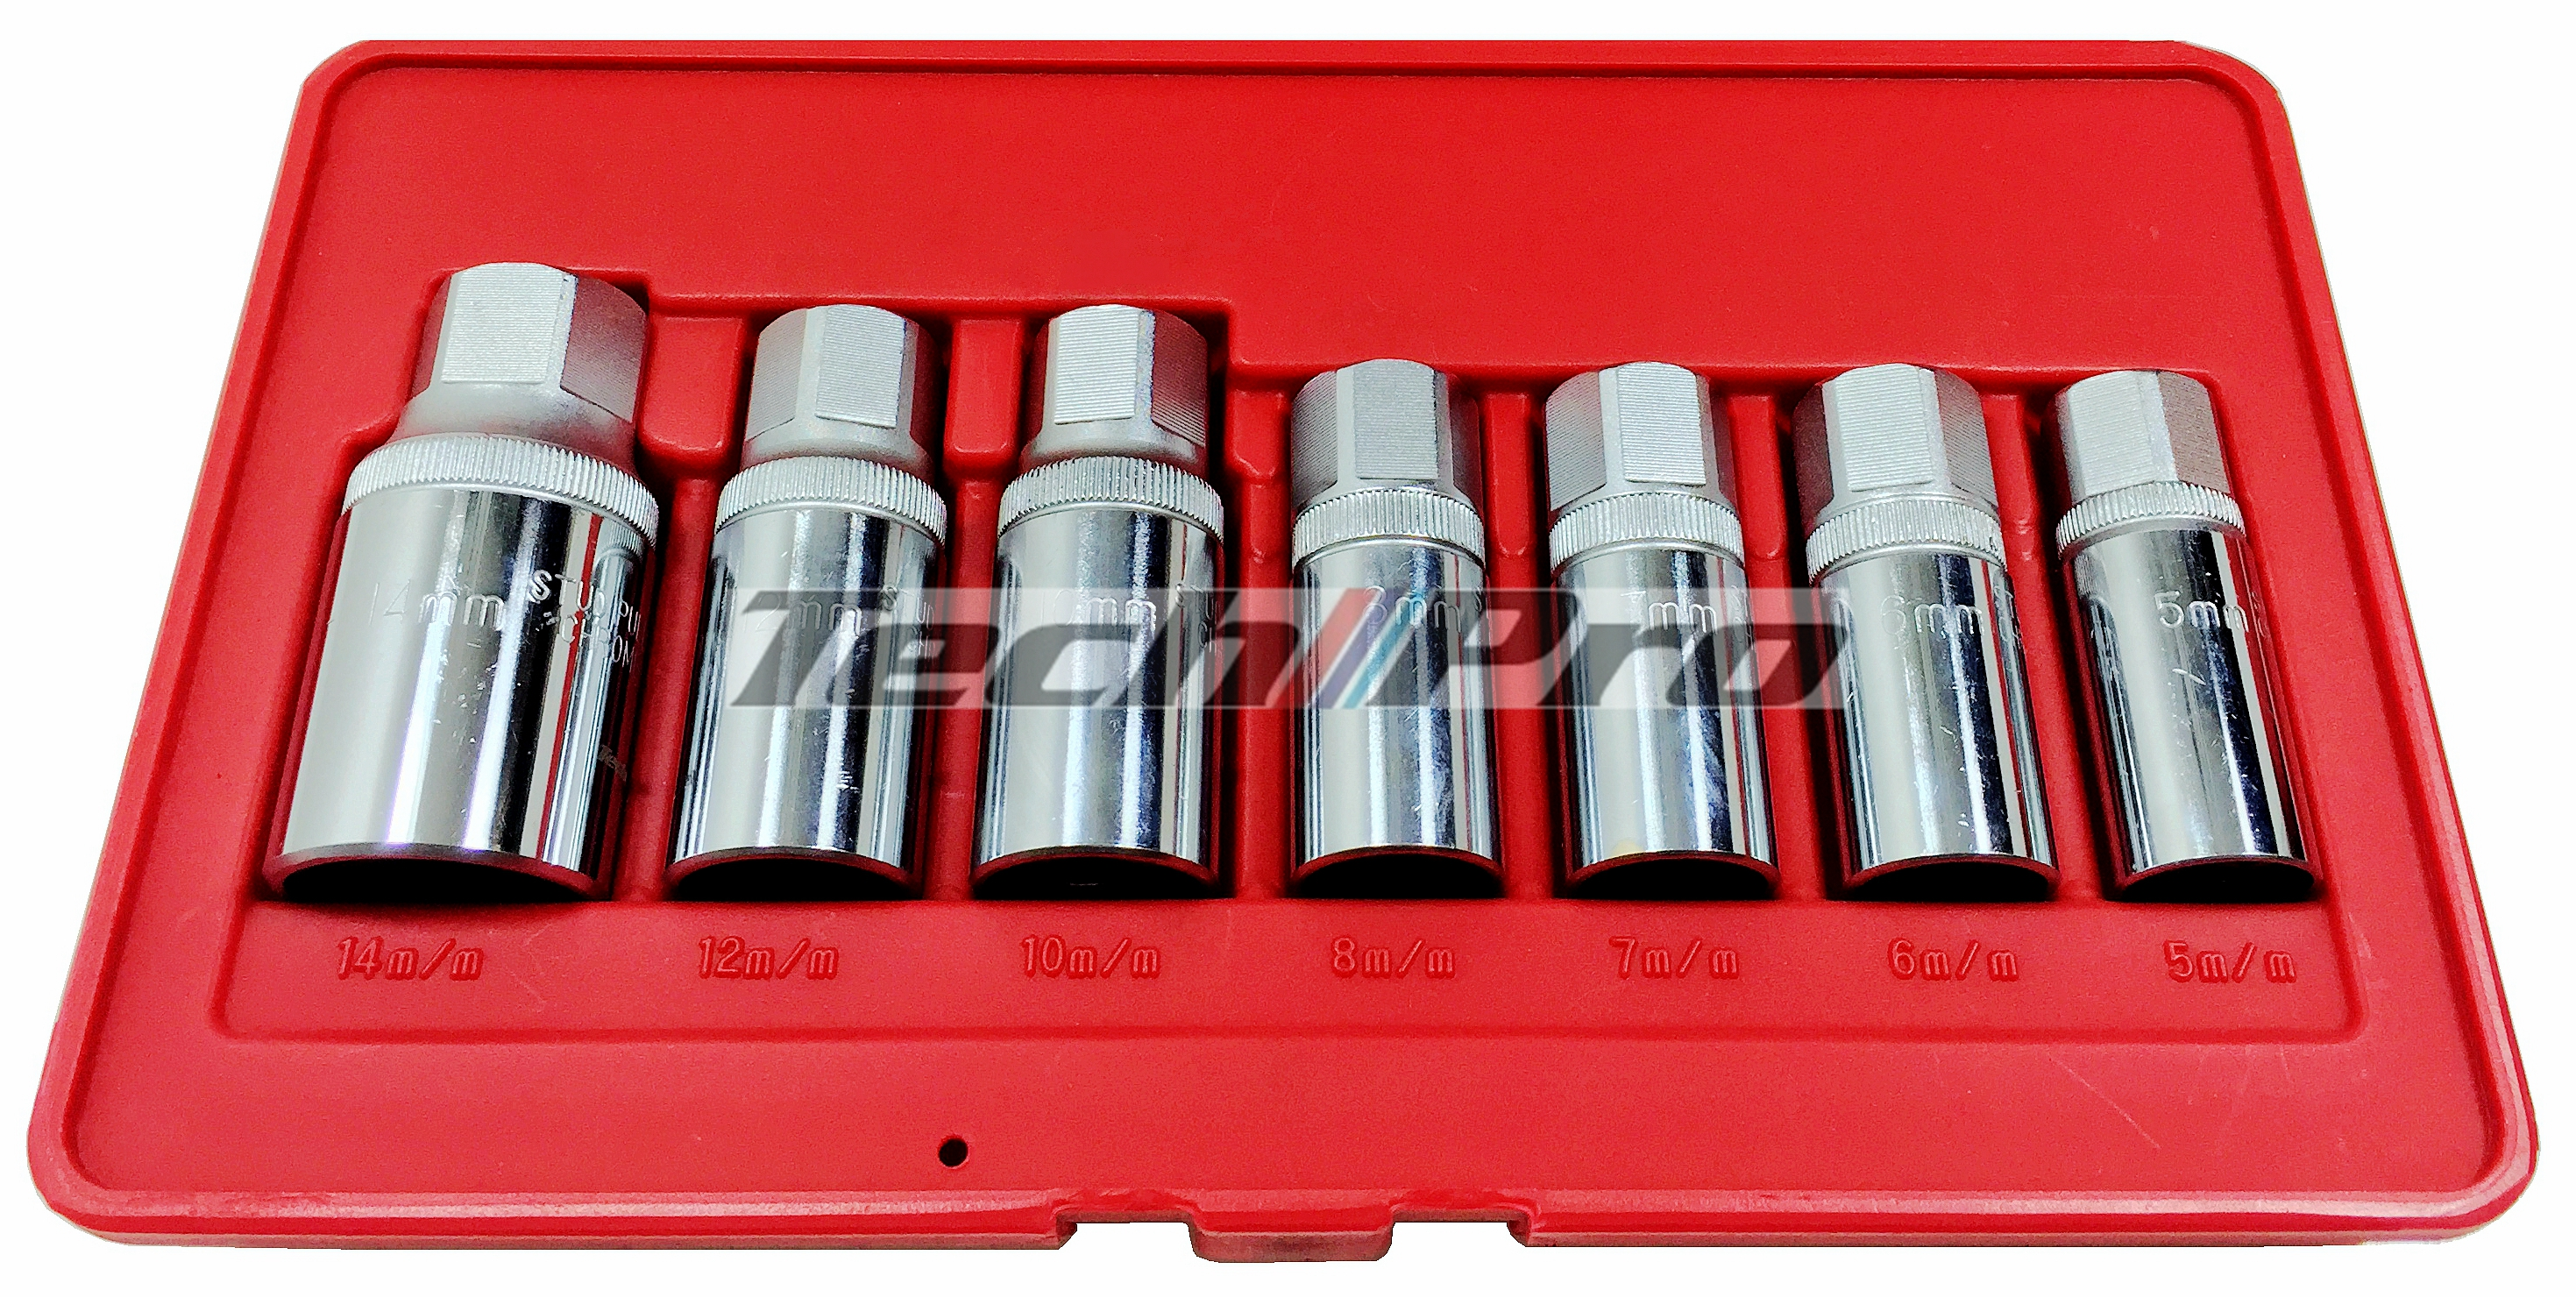 EE-035 - Stud Remover / Installer Metric MM - 7 pcs